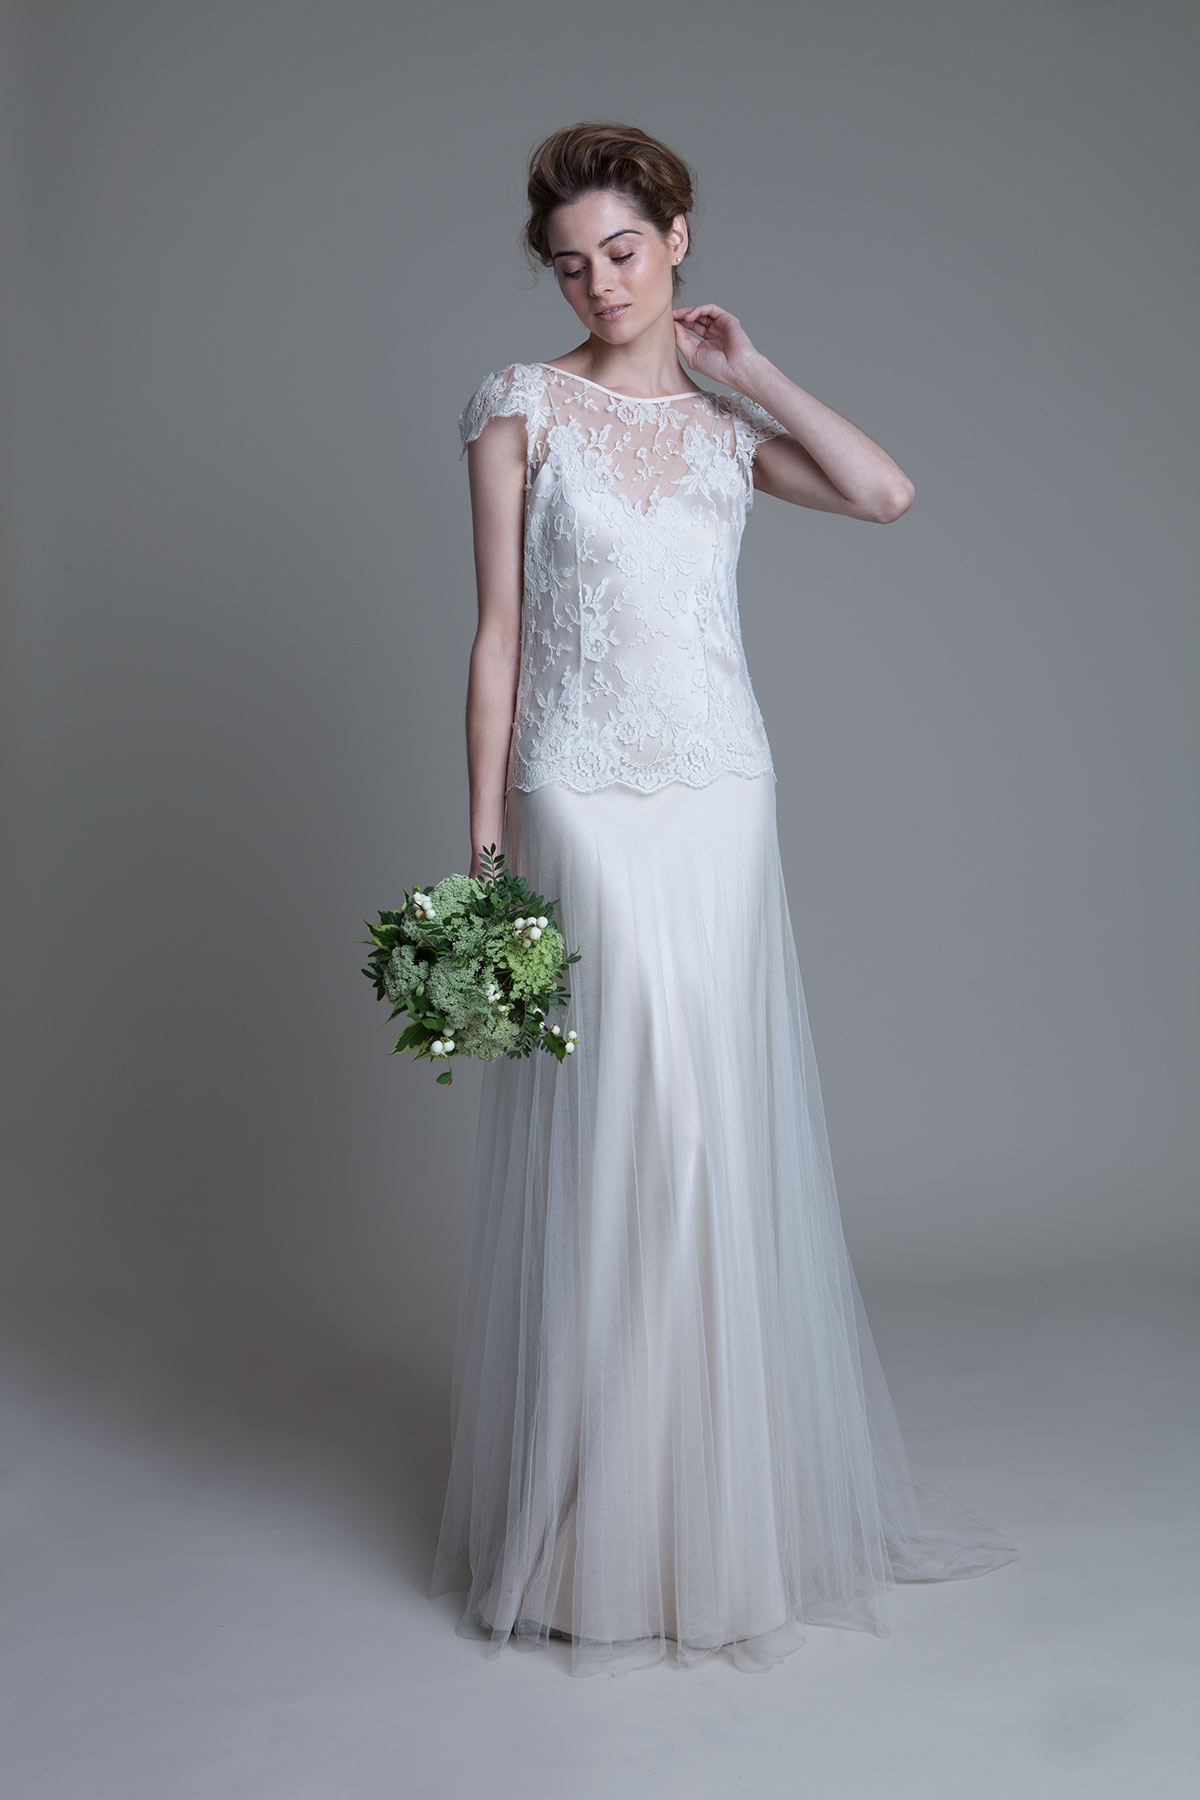 Iris Jane French Chantilly Lace and Tulle Bridal Wedding Dress by Halfpenny London